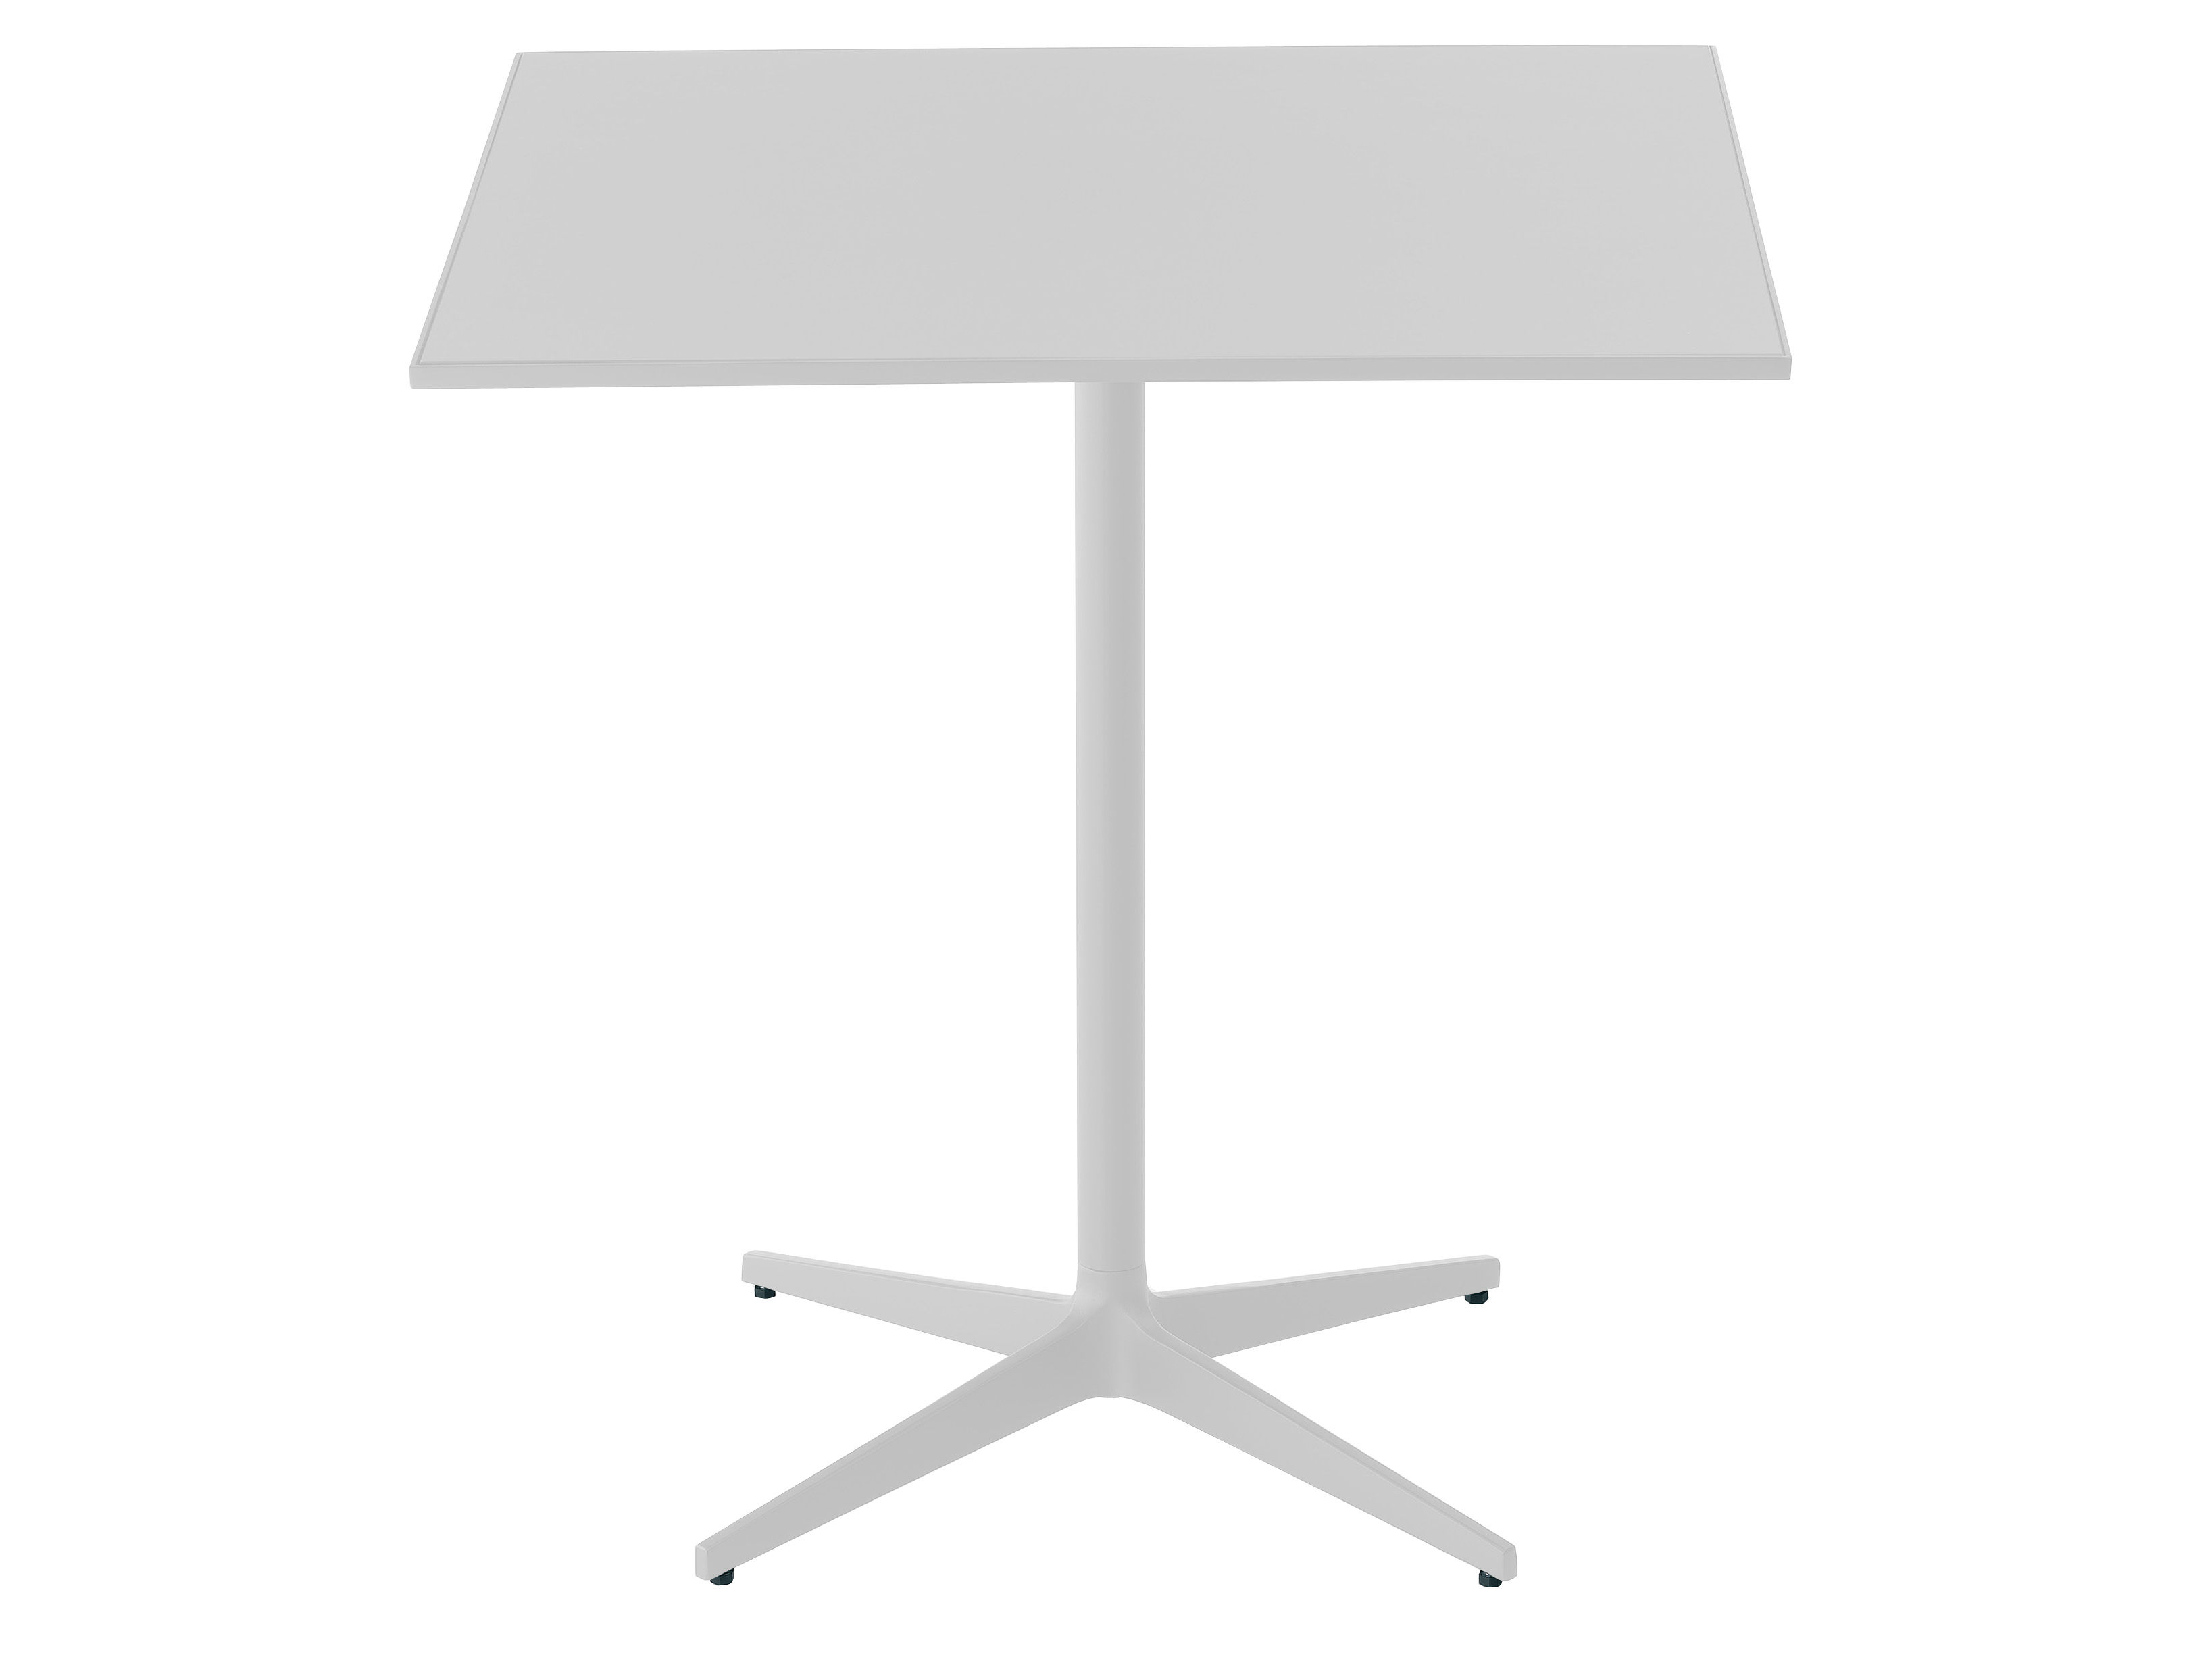 Furniture - Dining Tables - T Square table by MDF Italia - White - Lacquered steel, Resin